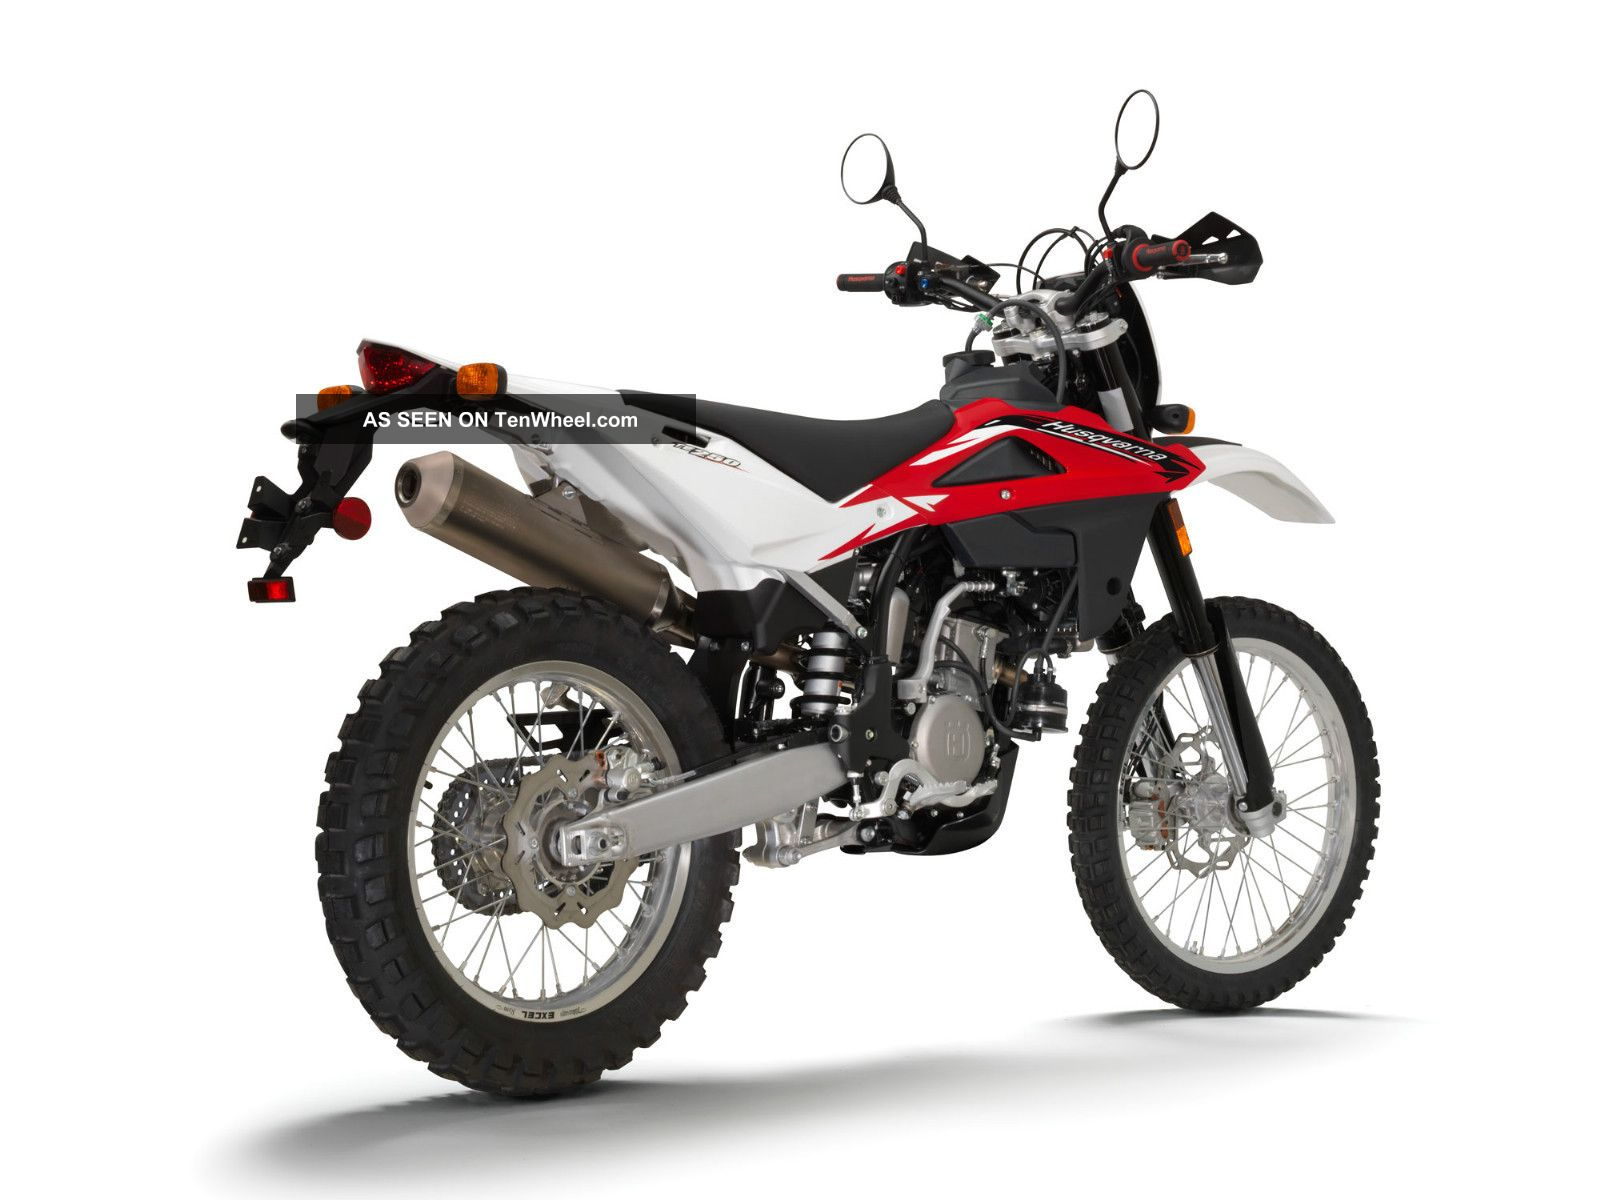 2012 Husqvarna Te250 Street Legal Enduro Motorcycle